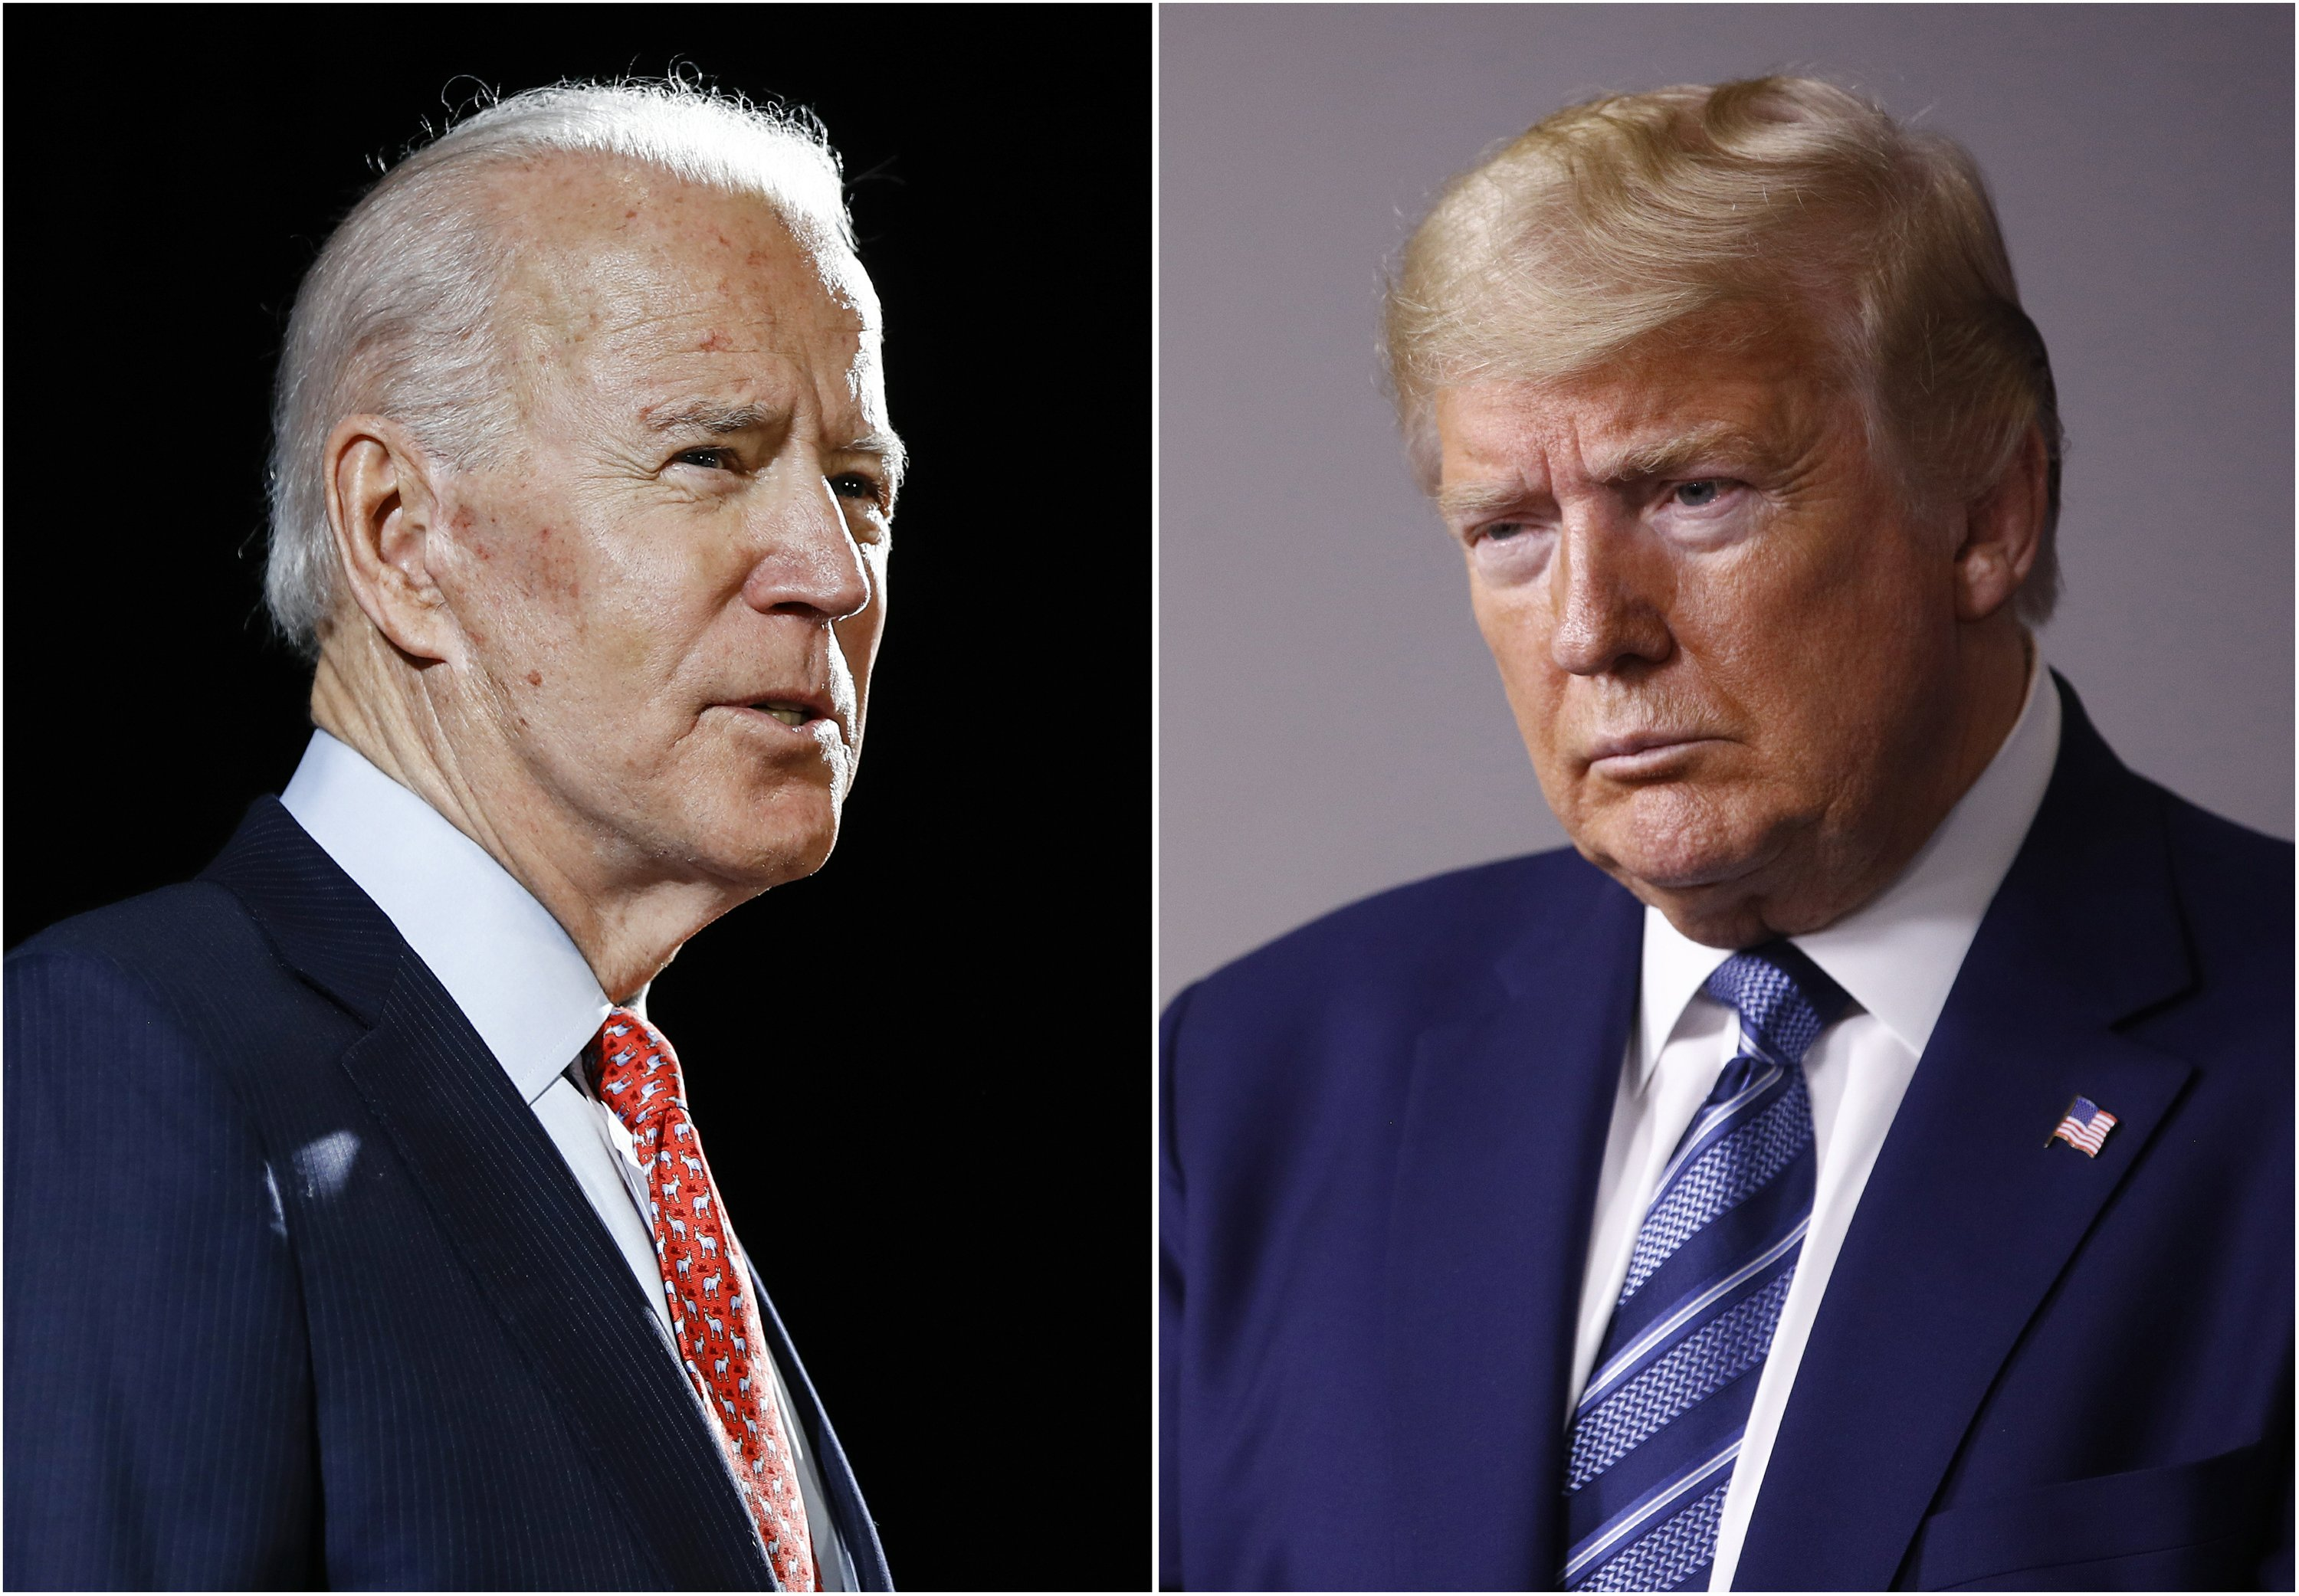 Survey Suggests Evangelical and Catholic Voters in Swing States May Shift 11 Percent for Biden Over Trump